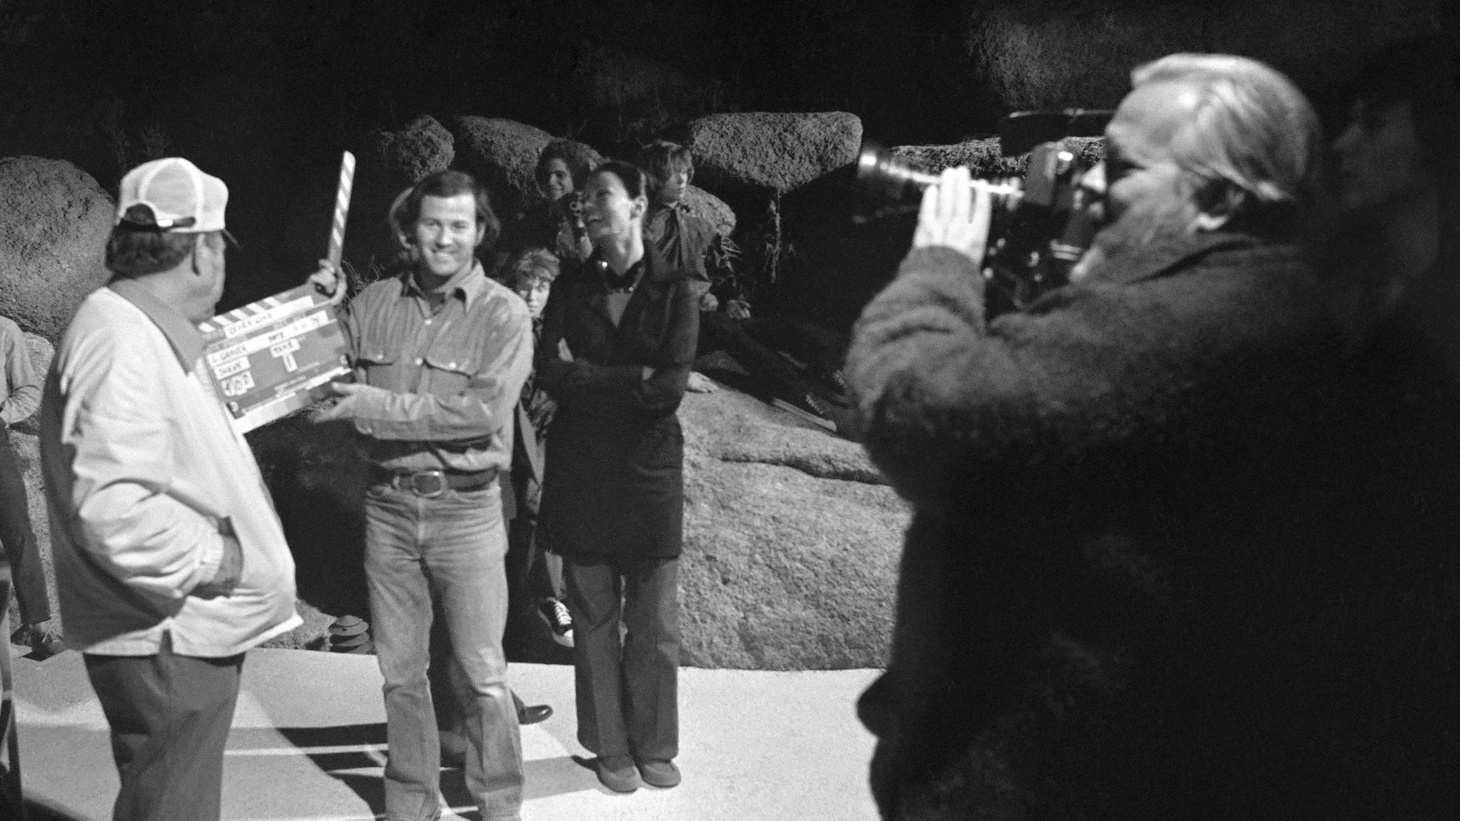 When he was just starting his career, 'Indiana Jones' and 'Jurassic Park' producer Frank Marshall got a job with Orson Welles on what would be the legendary director's last film.